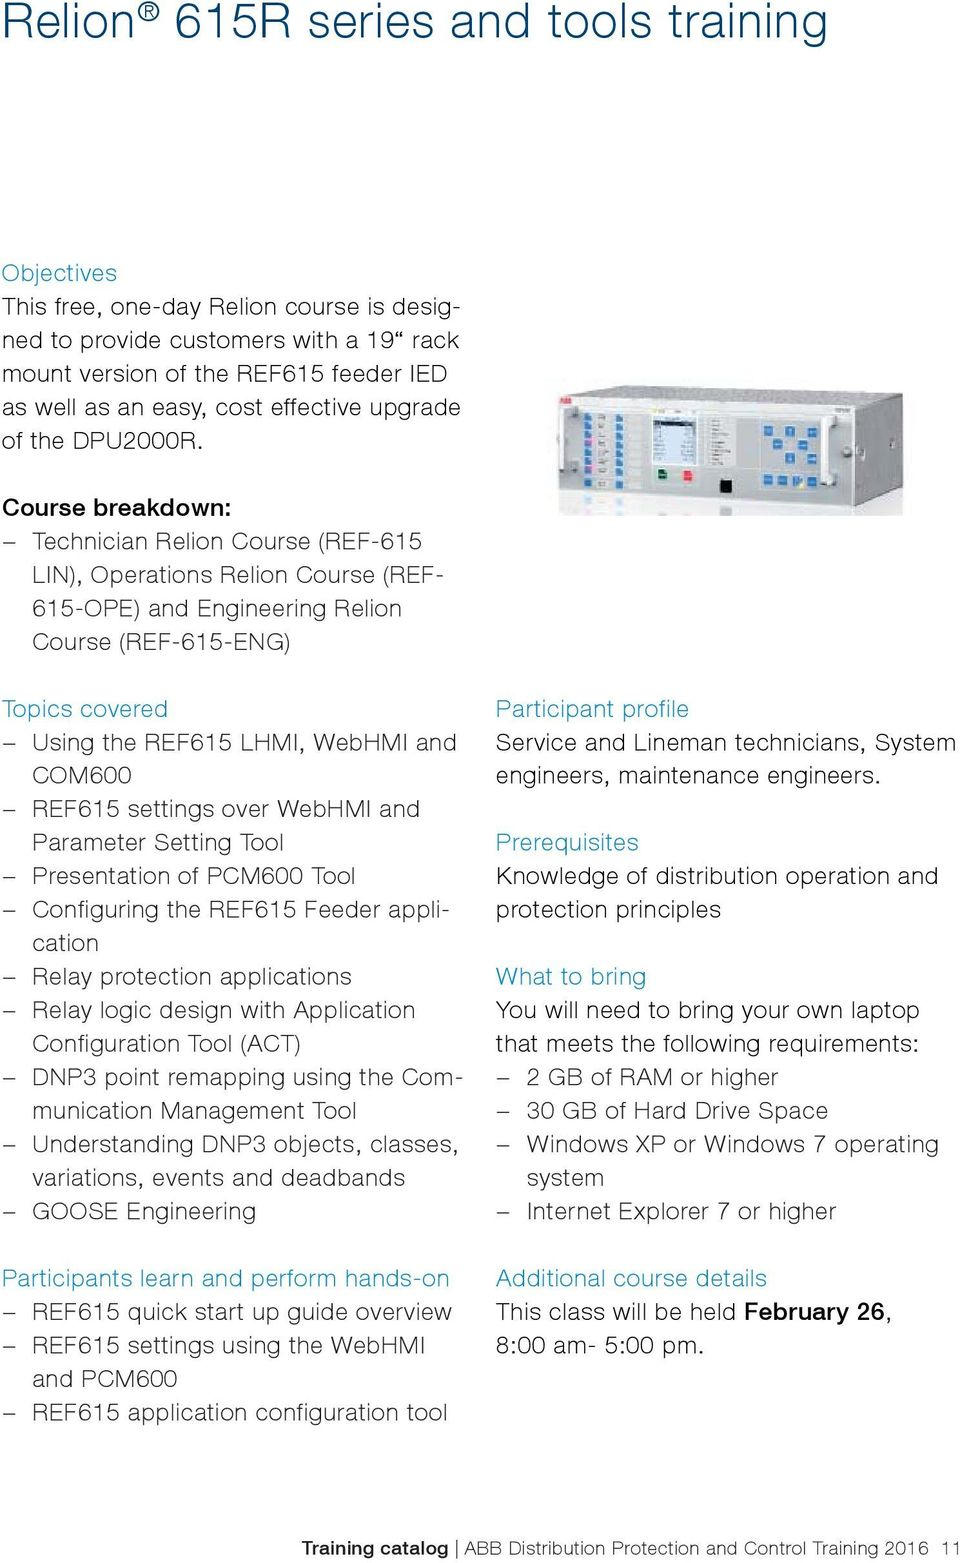 Training Catalog Abb Distribution Automation 2016 Relay Basic Operation Of A For Customized Logic Course Breakdown Technician Relion Ref 615 Lin